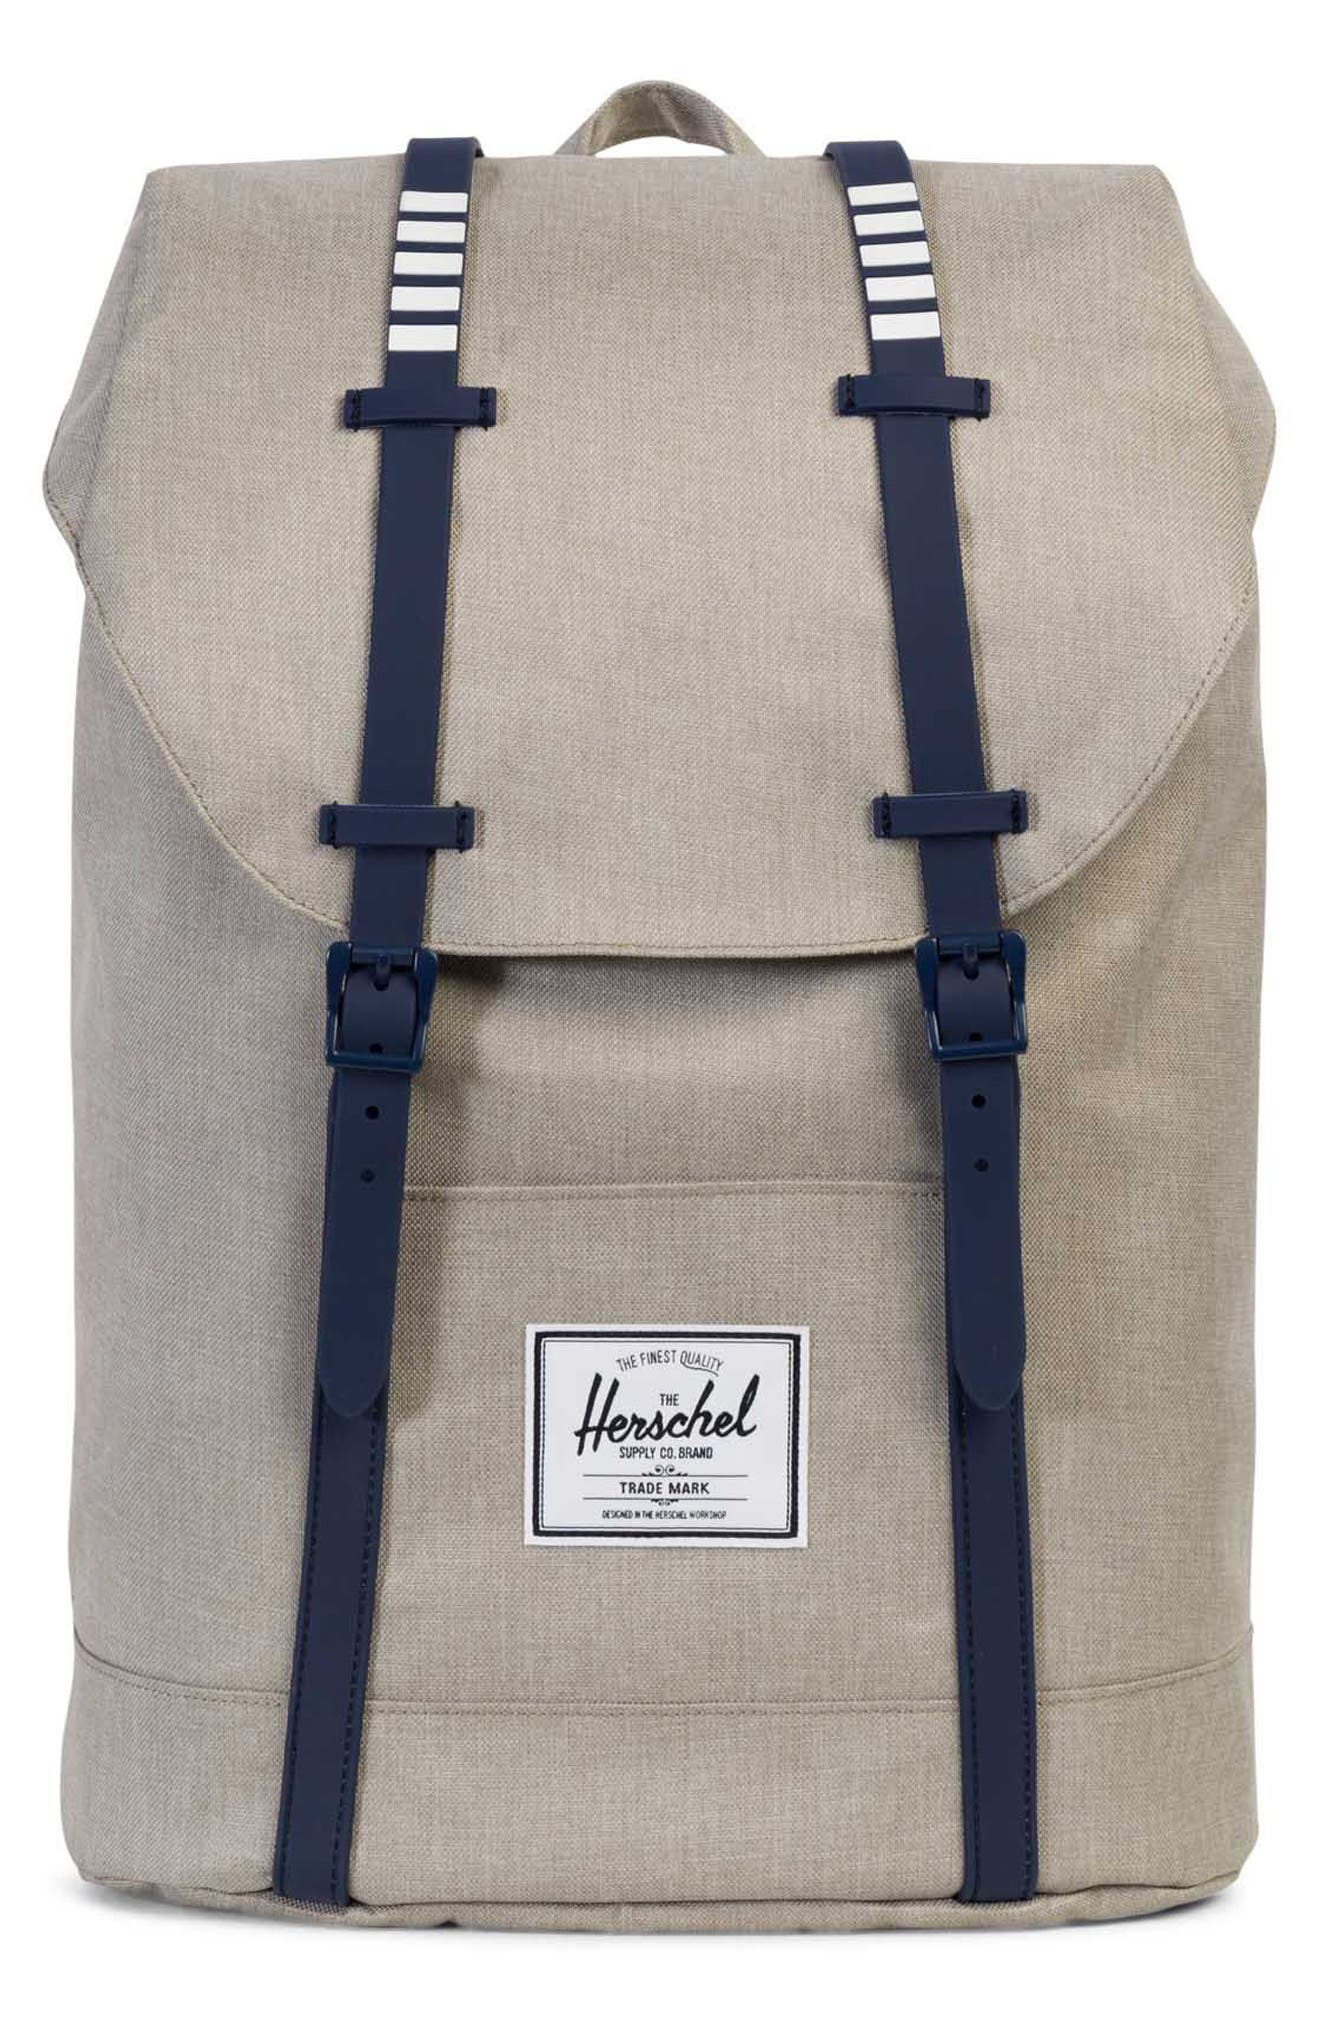 Alternate Image 1 Selected - Herschel Supply Co. 'Retreat' Backpack